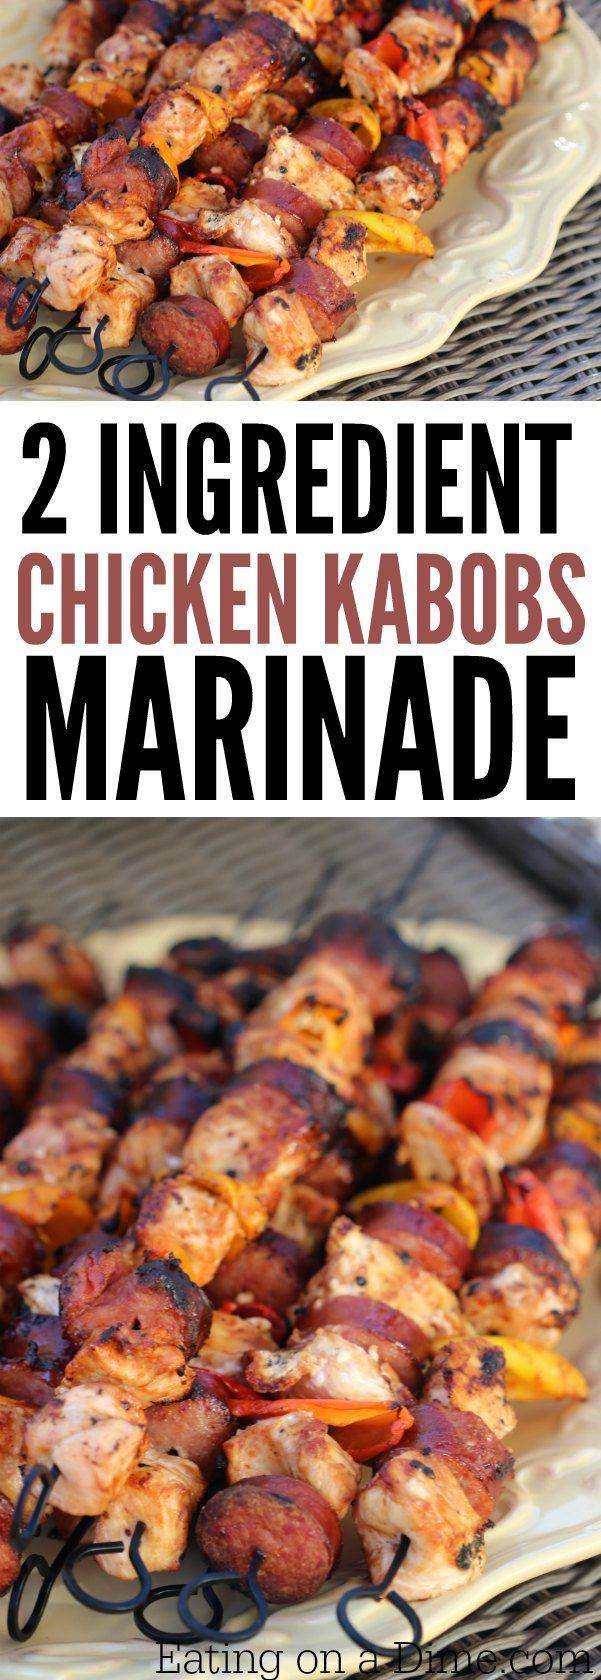 Zo S Kitchen Chicken Kabobs 286 best grilling! images on pinterest